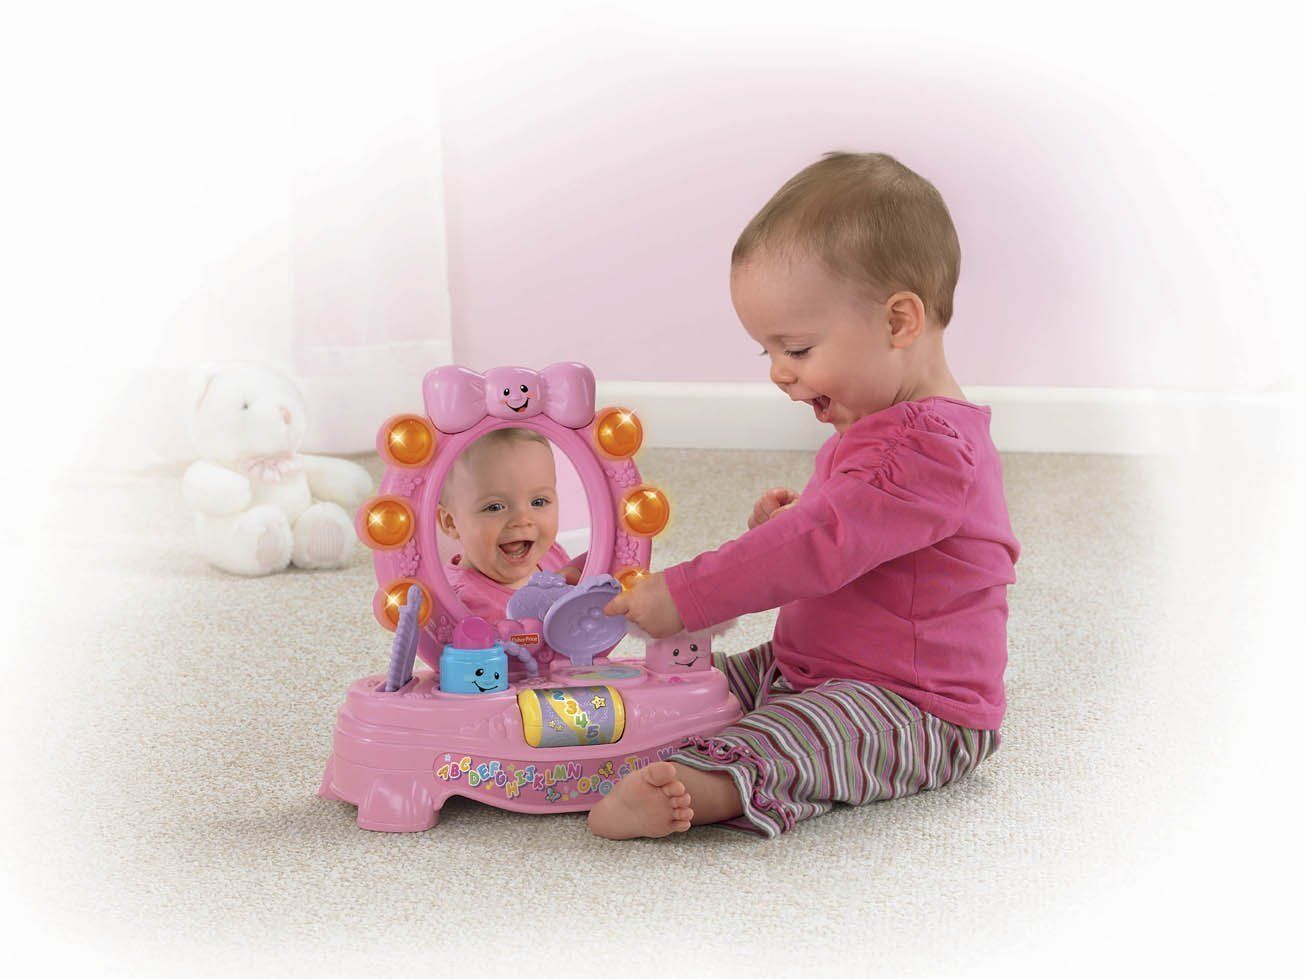 Best Toys For 1 Year Old Girls Toys For 1 Year Old